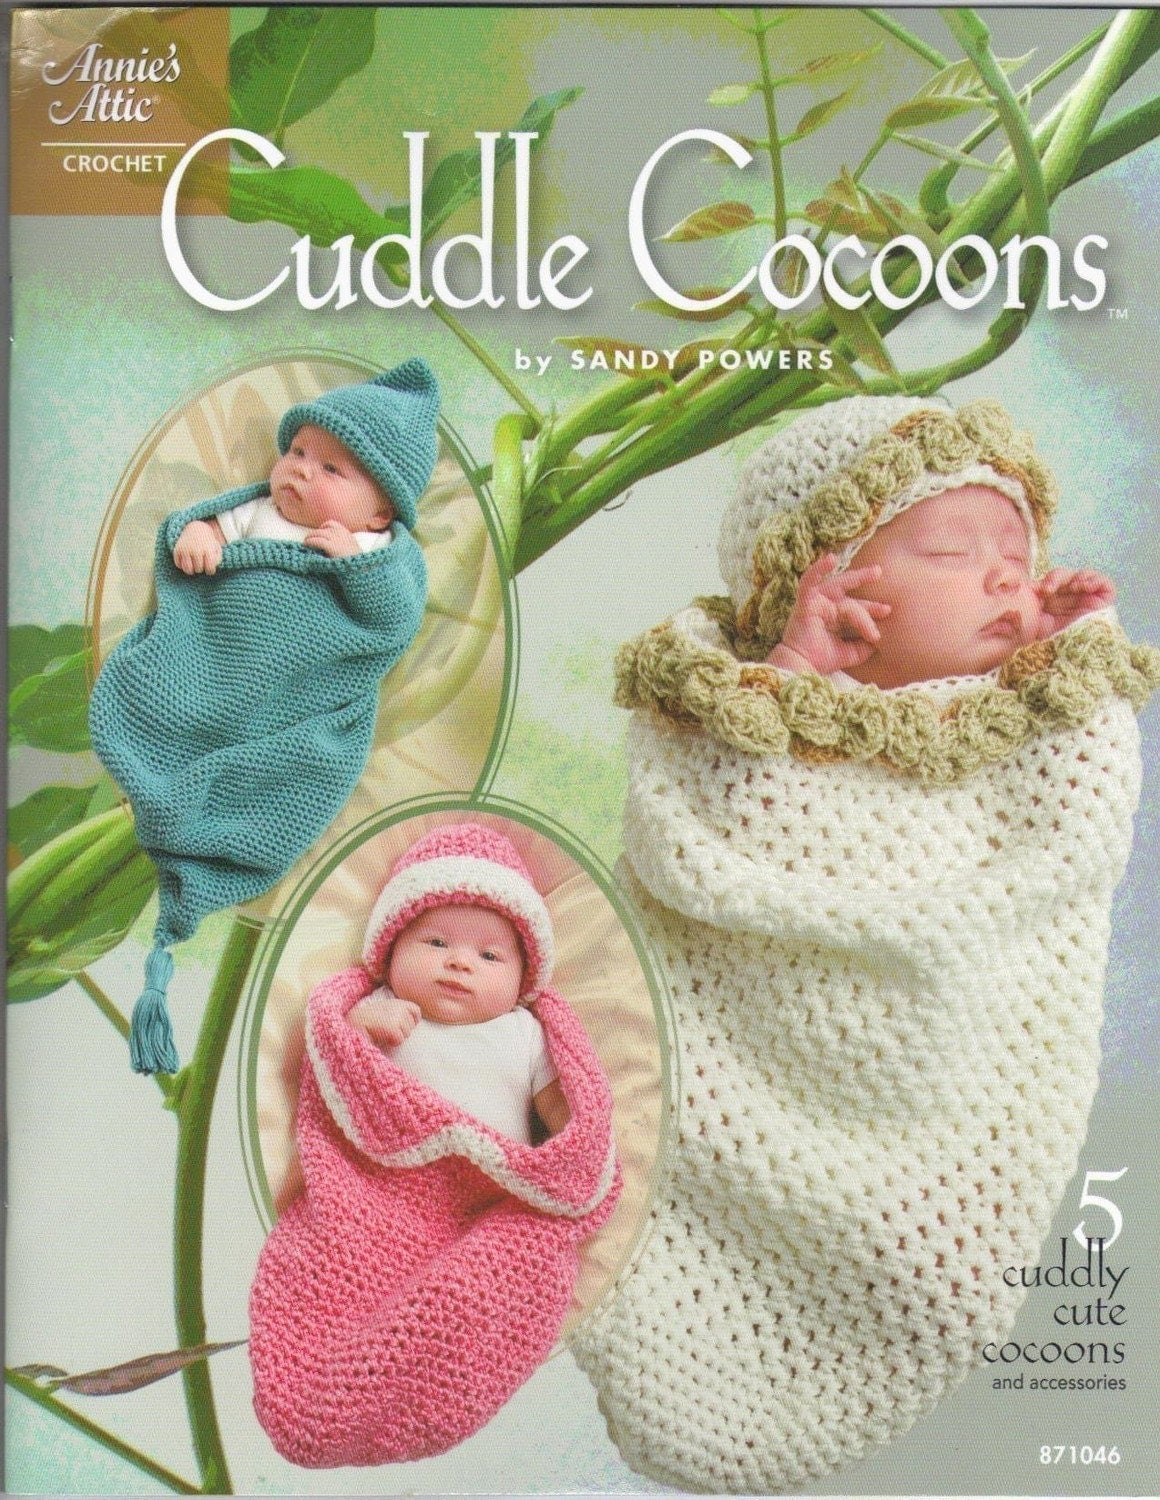 Annies Attic Crochet : Annies Attic Cuddle Cocoons Leaflet Crochet by SandysCapeCodOrig